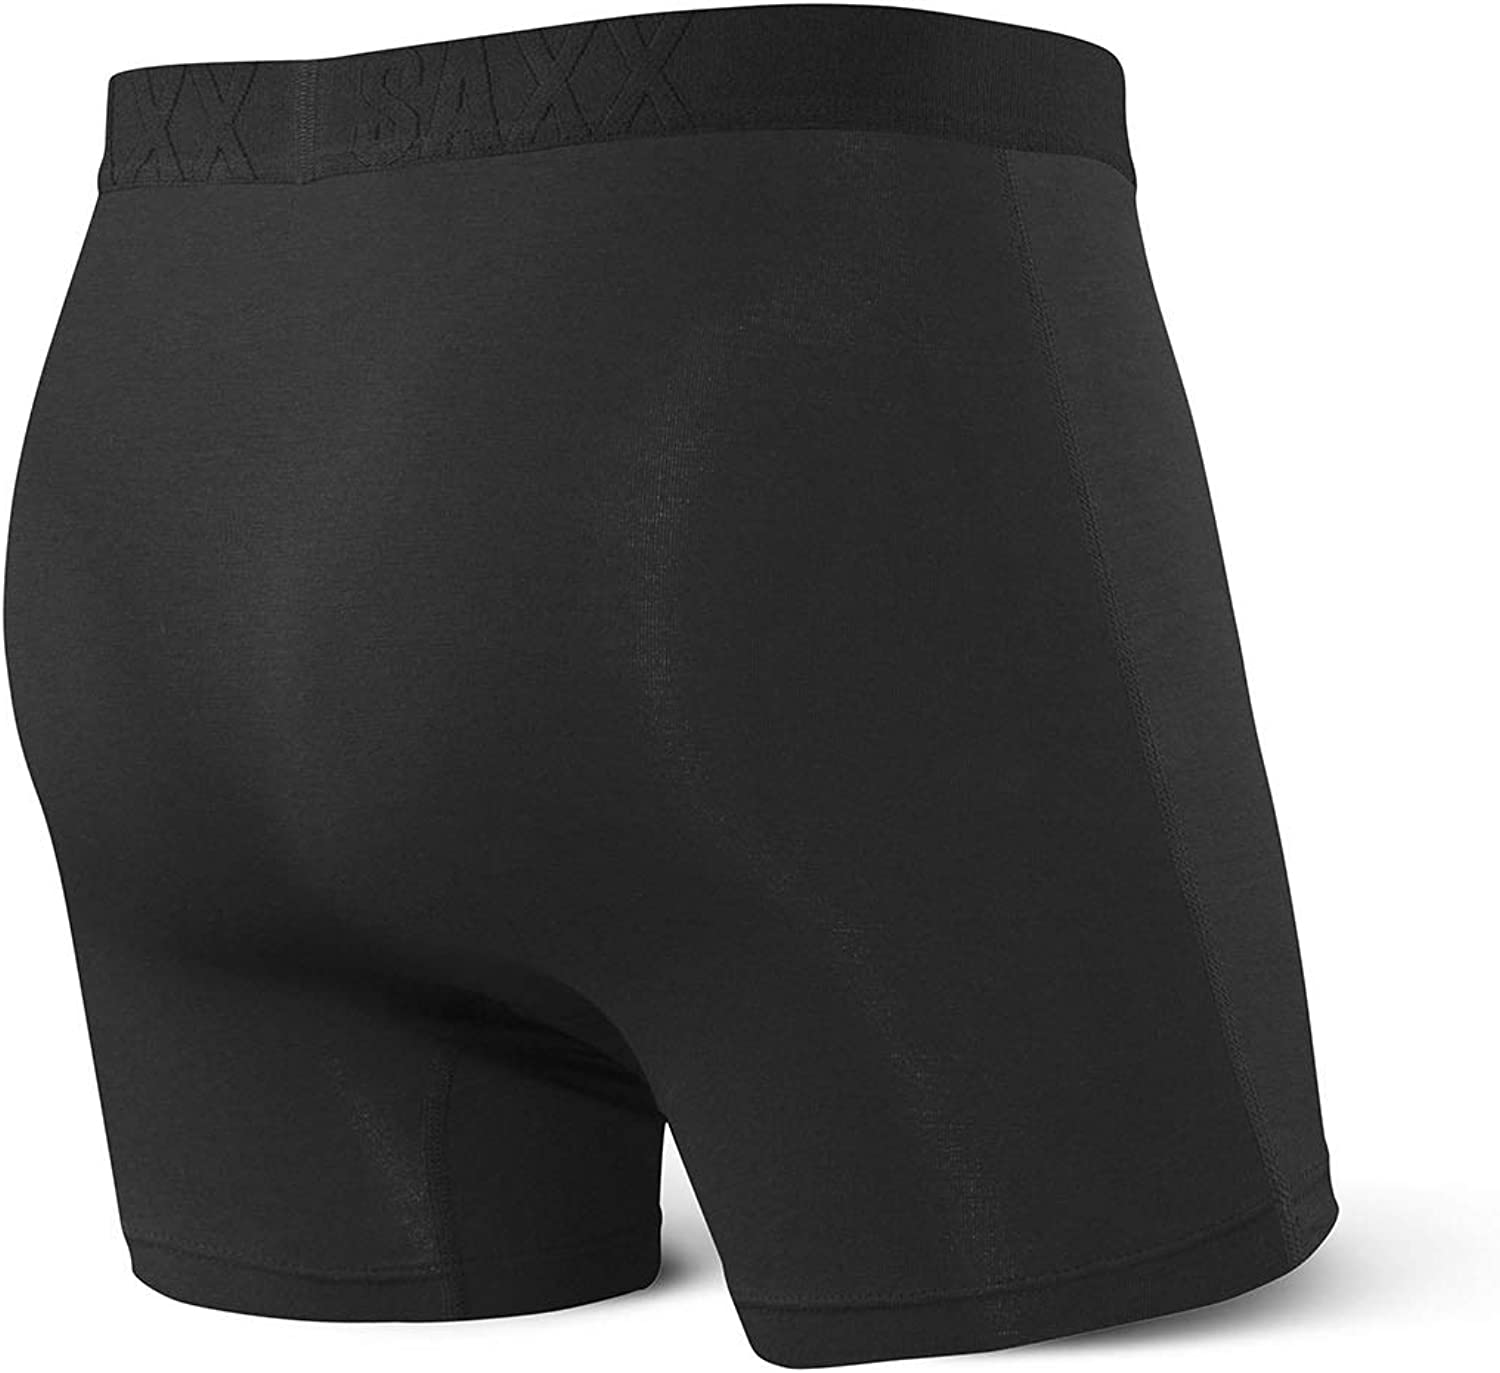 Vibe Boxer Briefs with Built-in Ballpark Pouch Support Core Saxx Mens Underwear